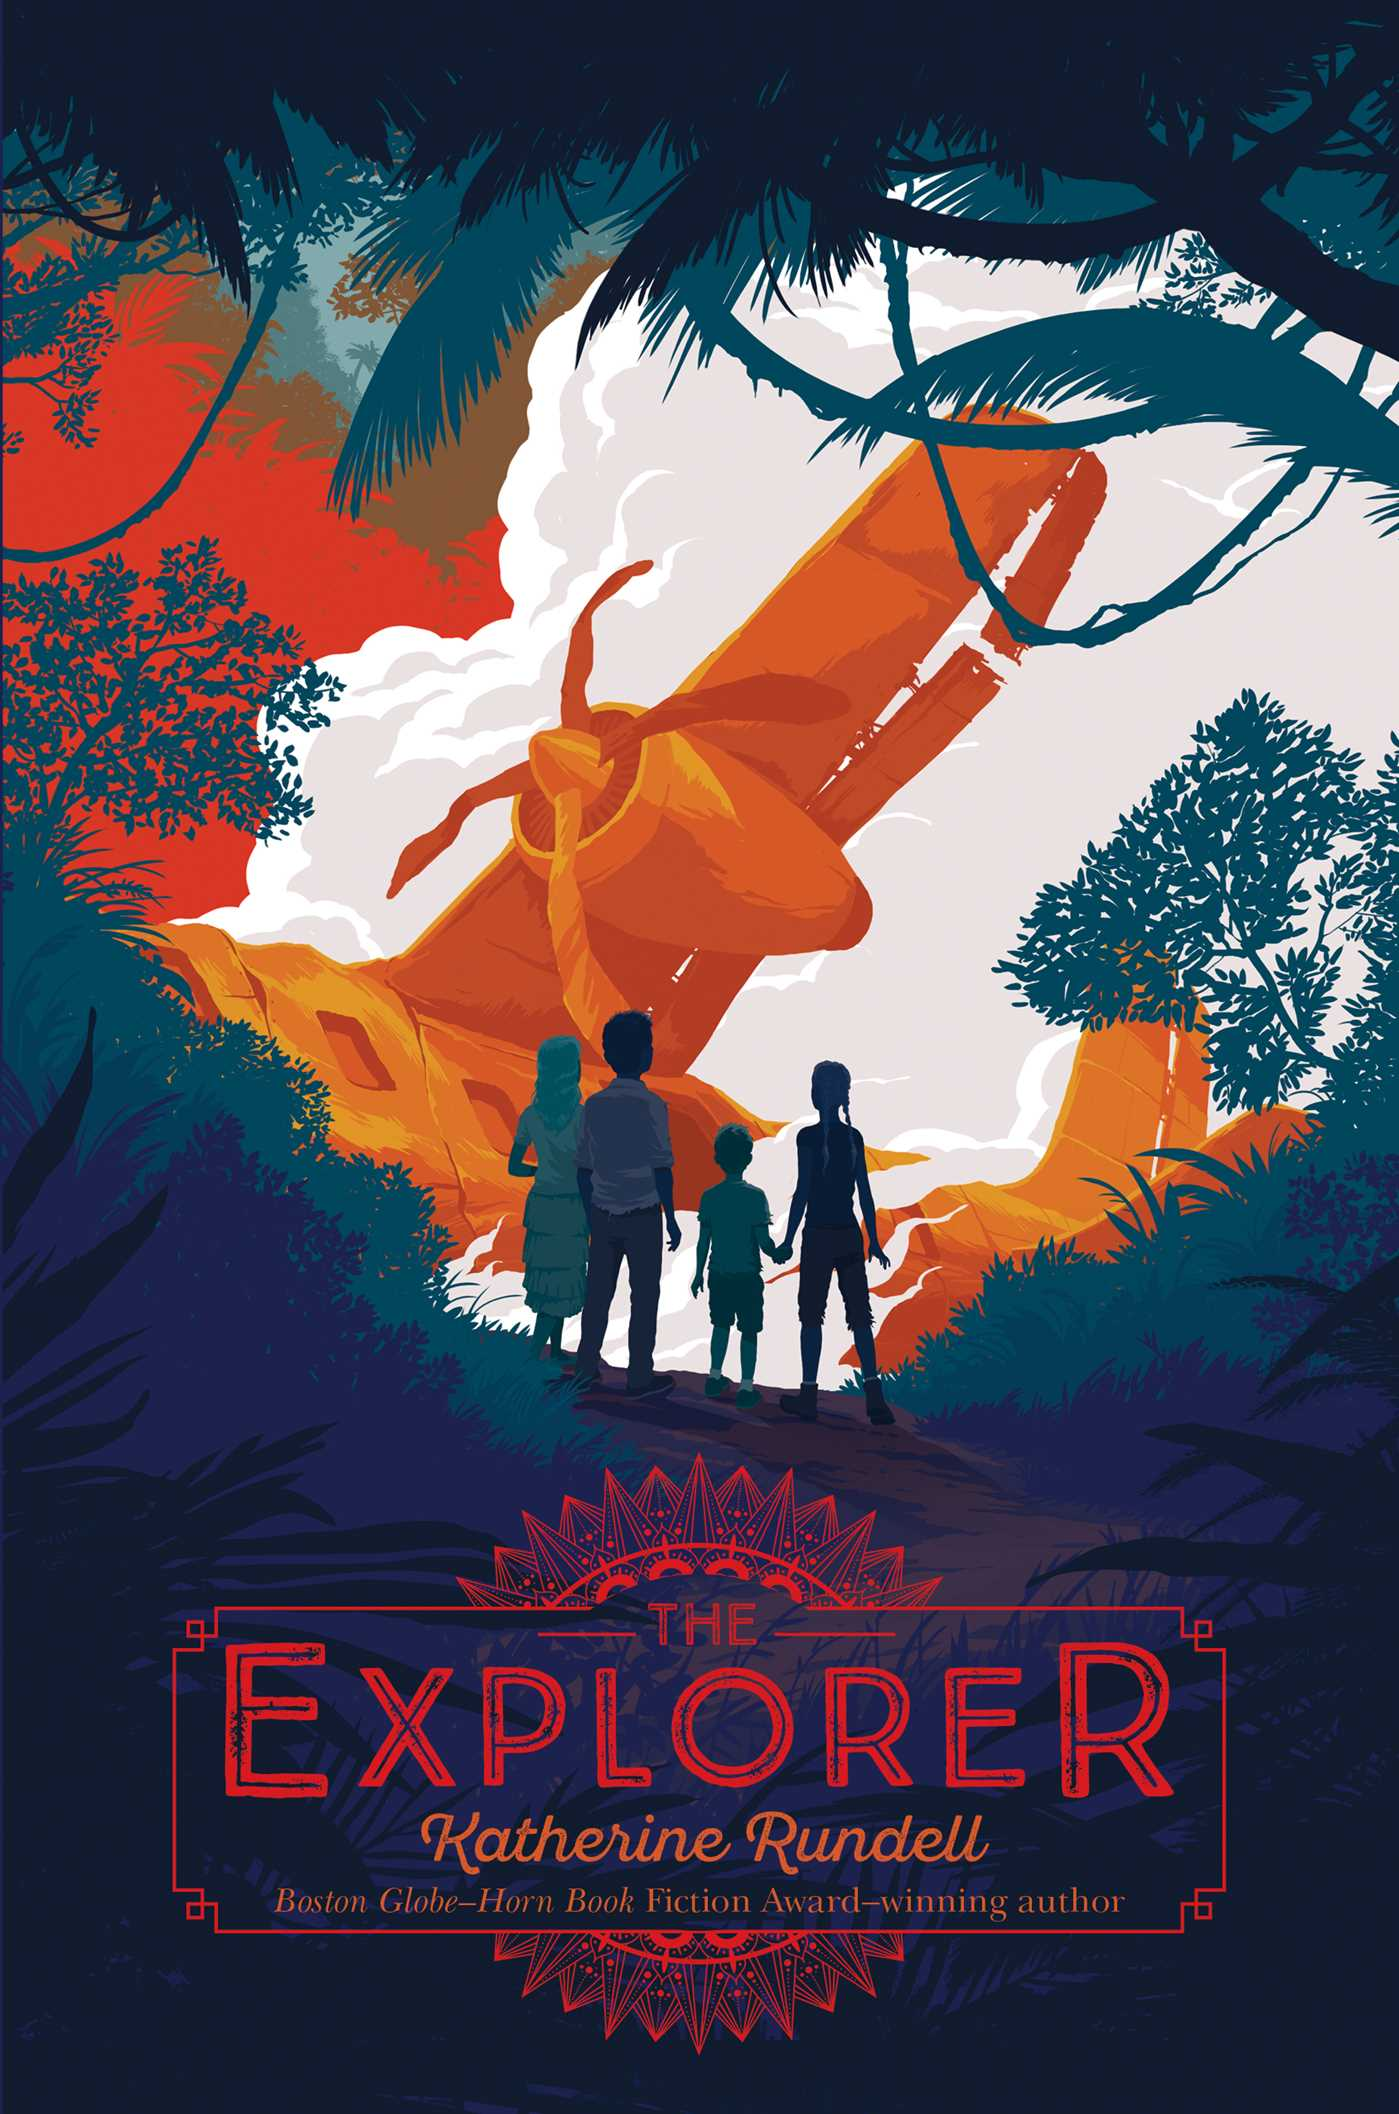 Image result for the explorer by katherine rundell